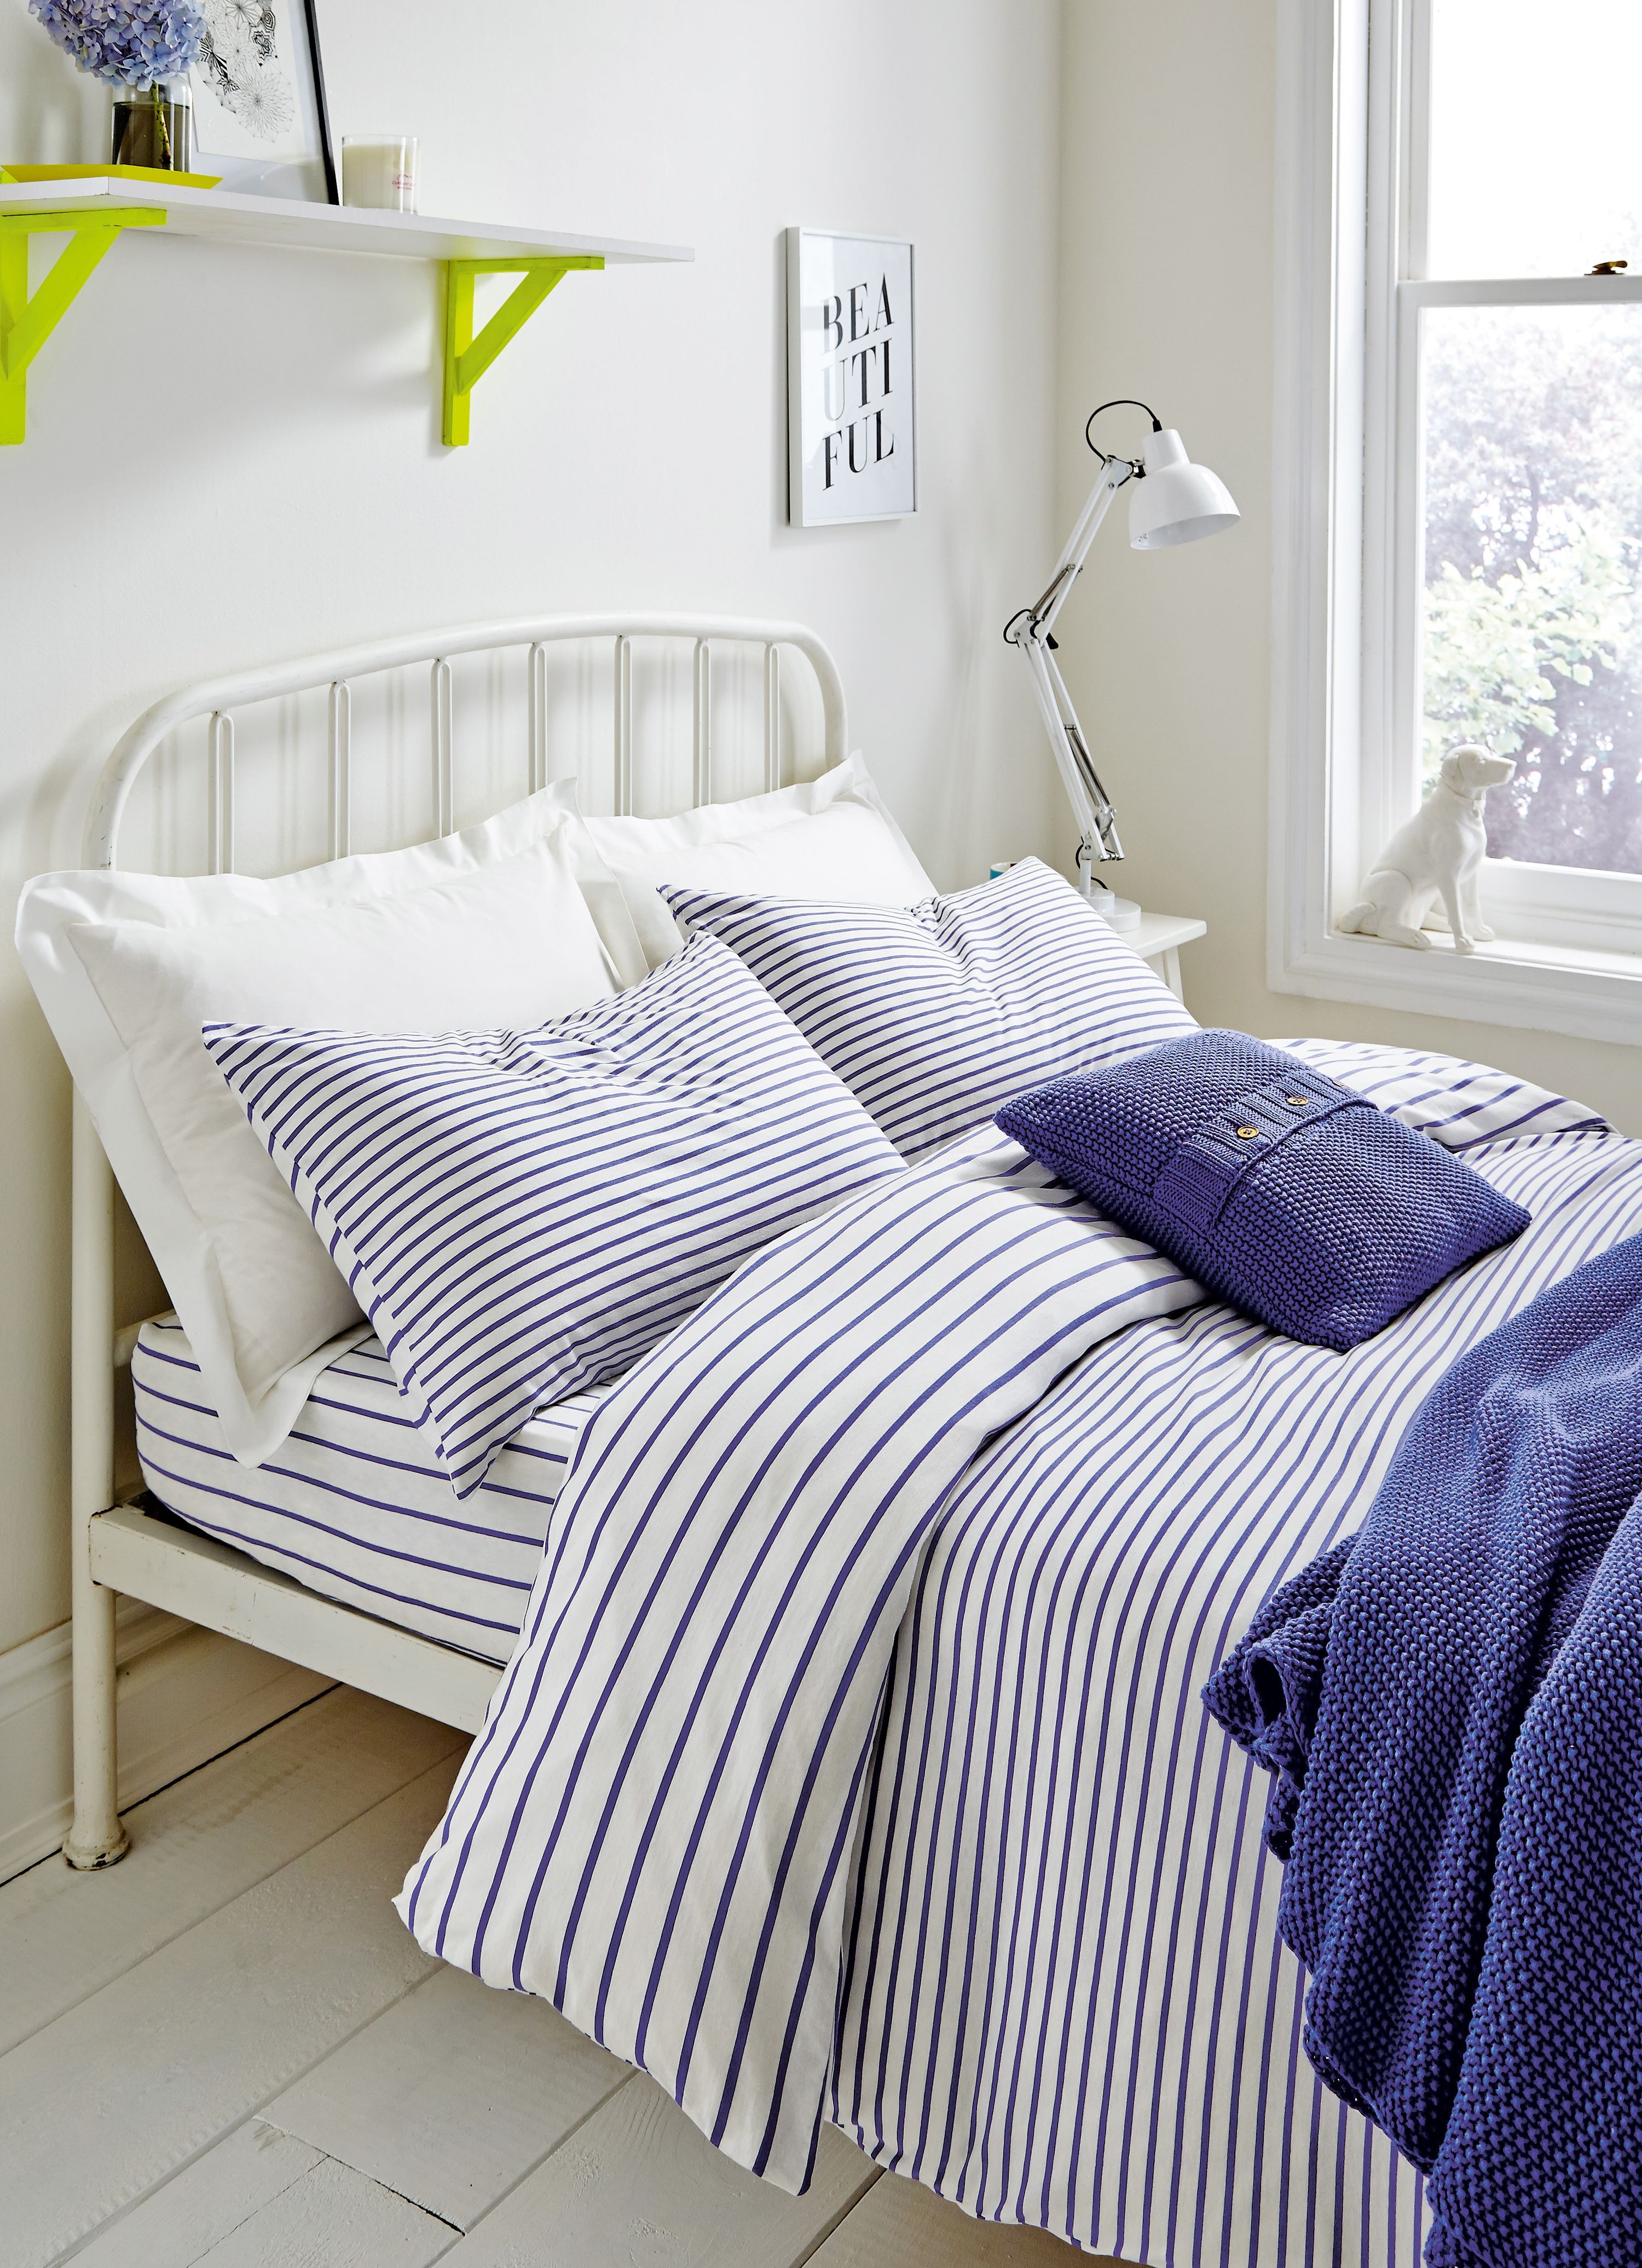 bedding overstock on chino shipping southern over tide skipjack comforter free orders product bath